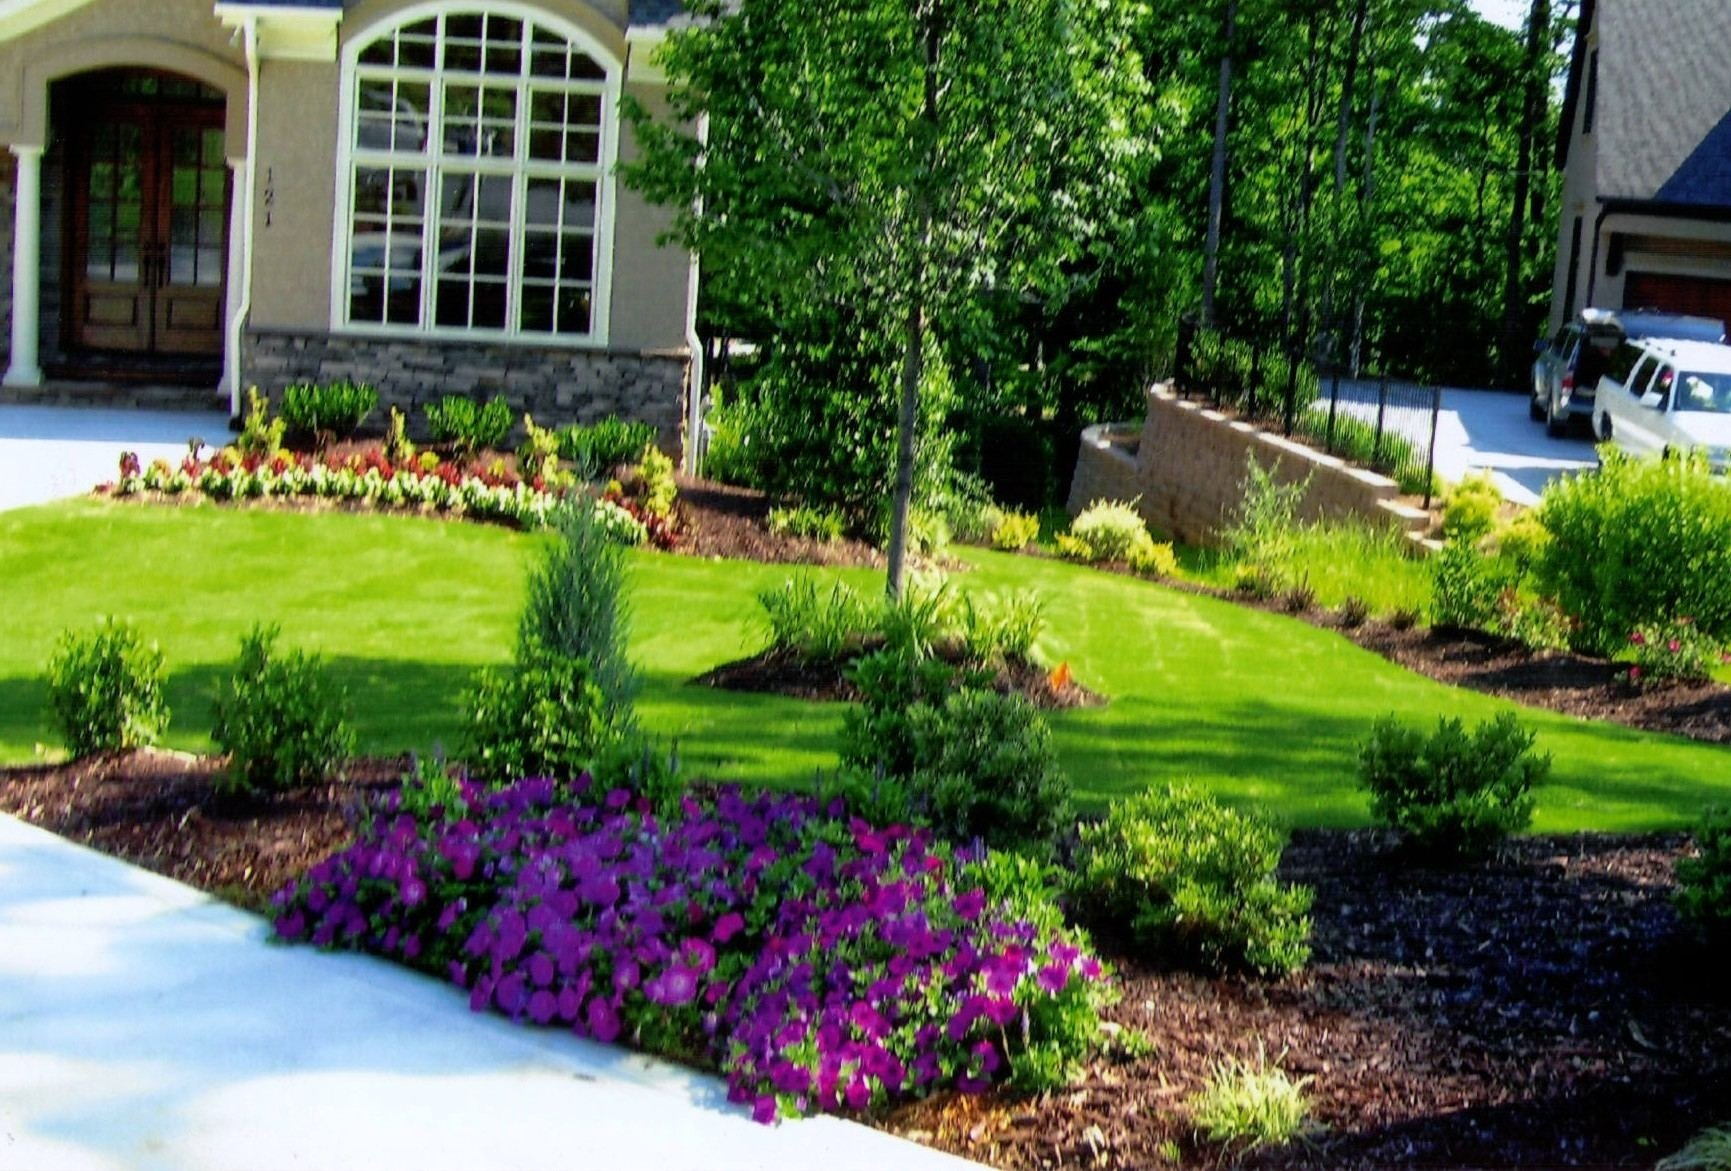 10 Spectacular Front Yard Flower Bed Ideas front lawn garden ideas wonderful garden ideas front yard flower 2020